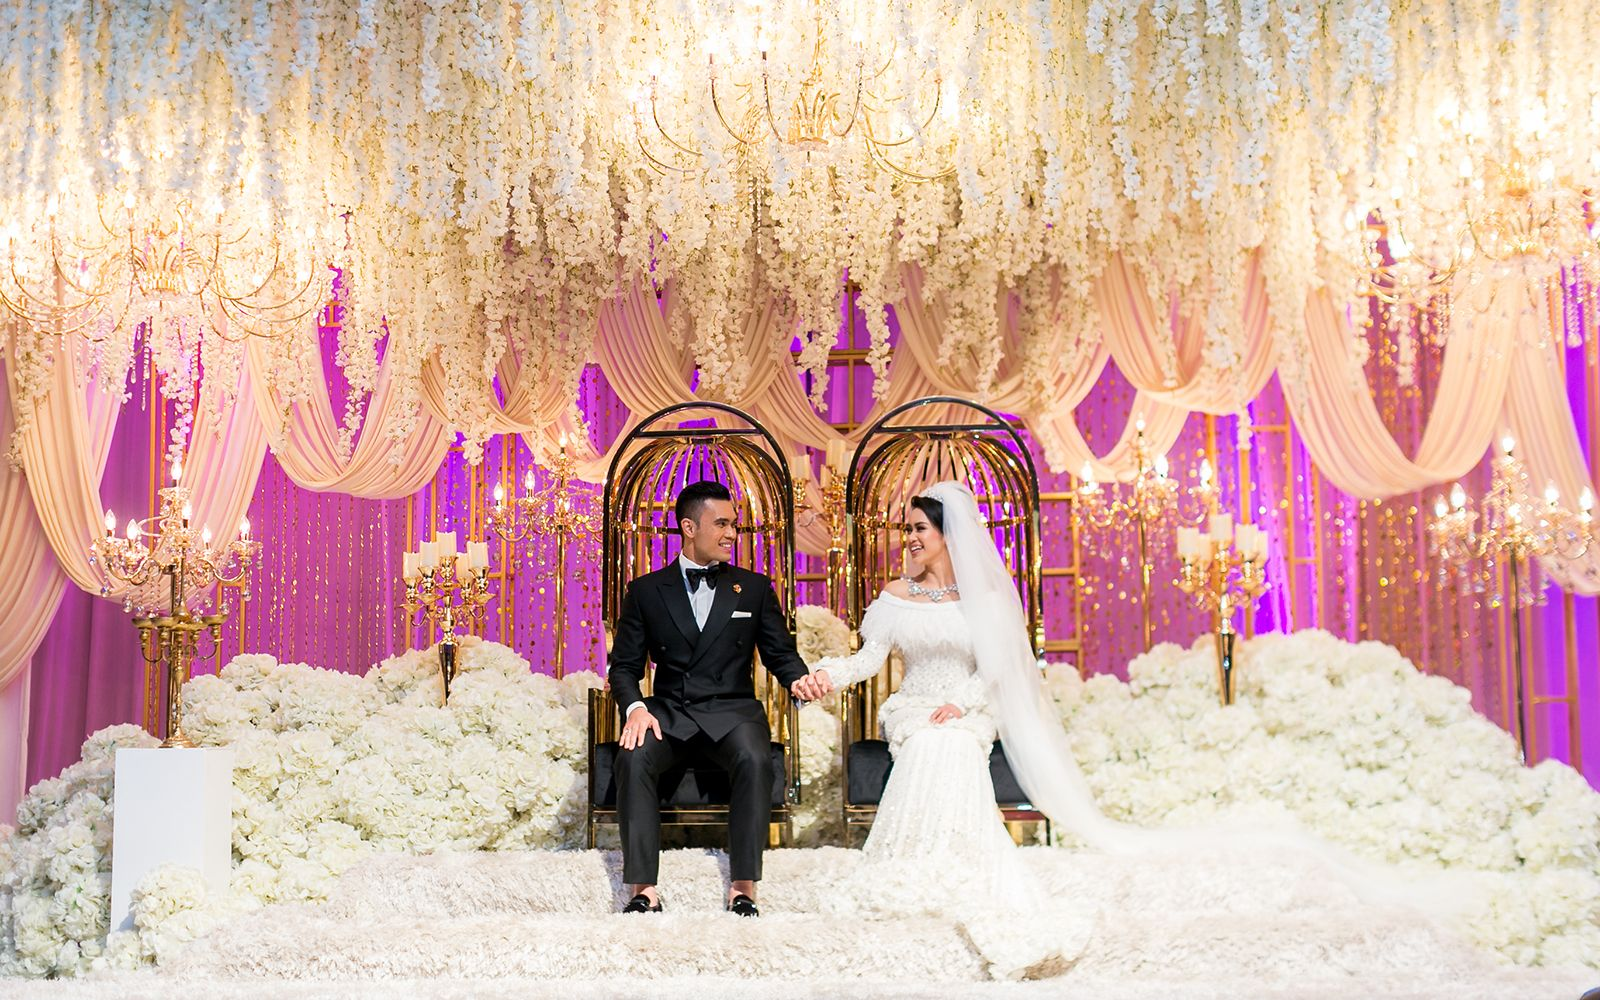 Exclusive: The 4 Fairytale Wedding Ceremonies Of Dr Fazliana Abd Rashid & Dr Farid Razali